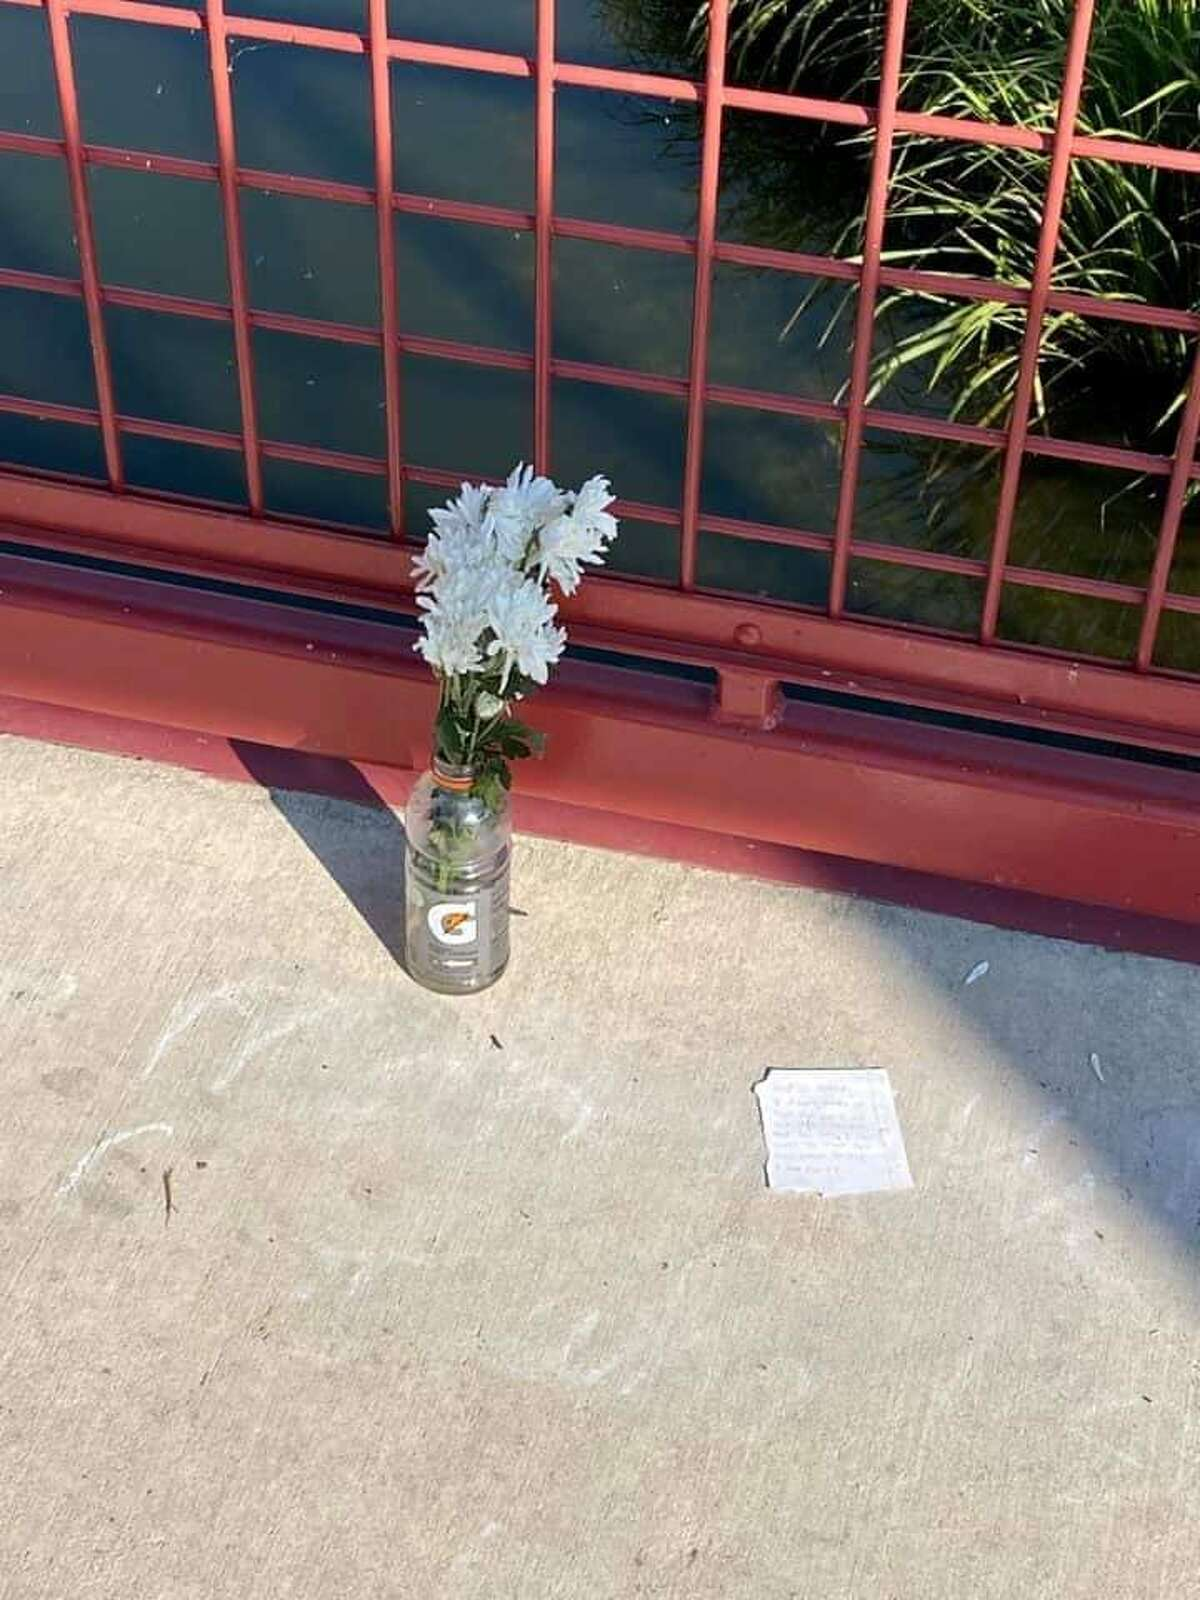 San Antonio's love-on-the-run romance has an update: a new note and flowers in a Gatorade bottle.